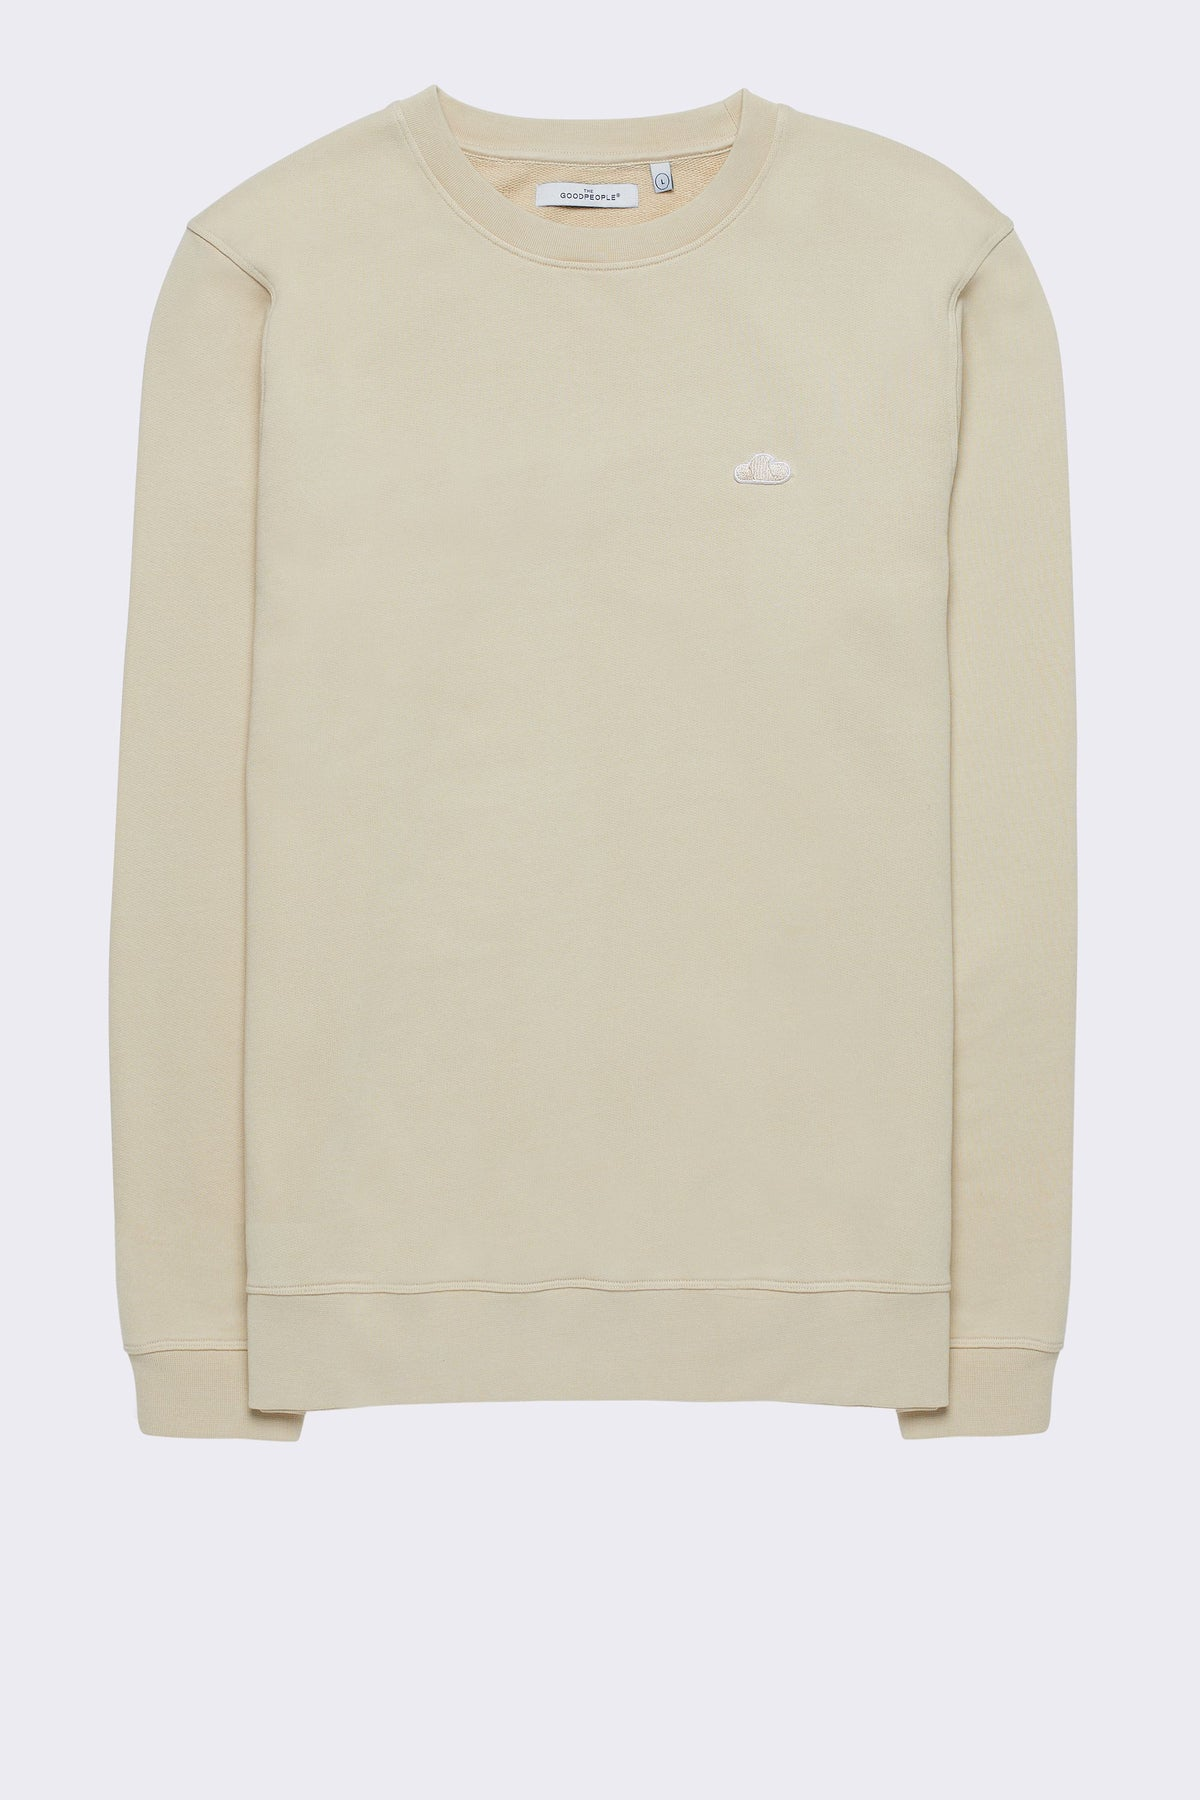 ICONIC LOGO PATCH SWEATER